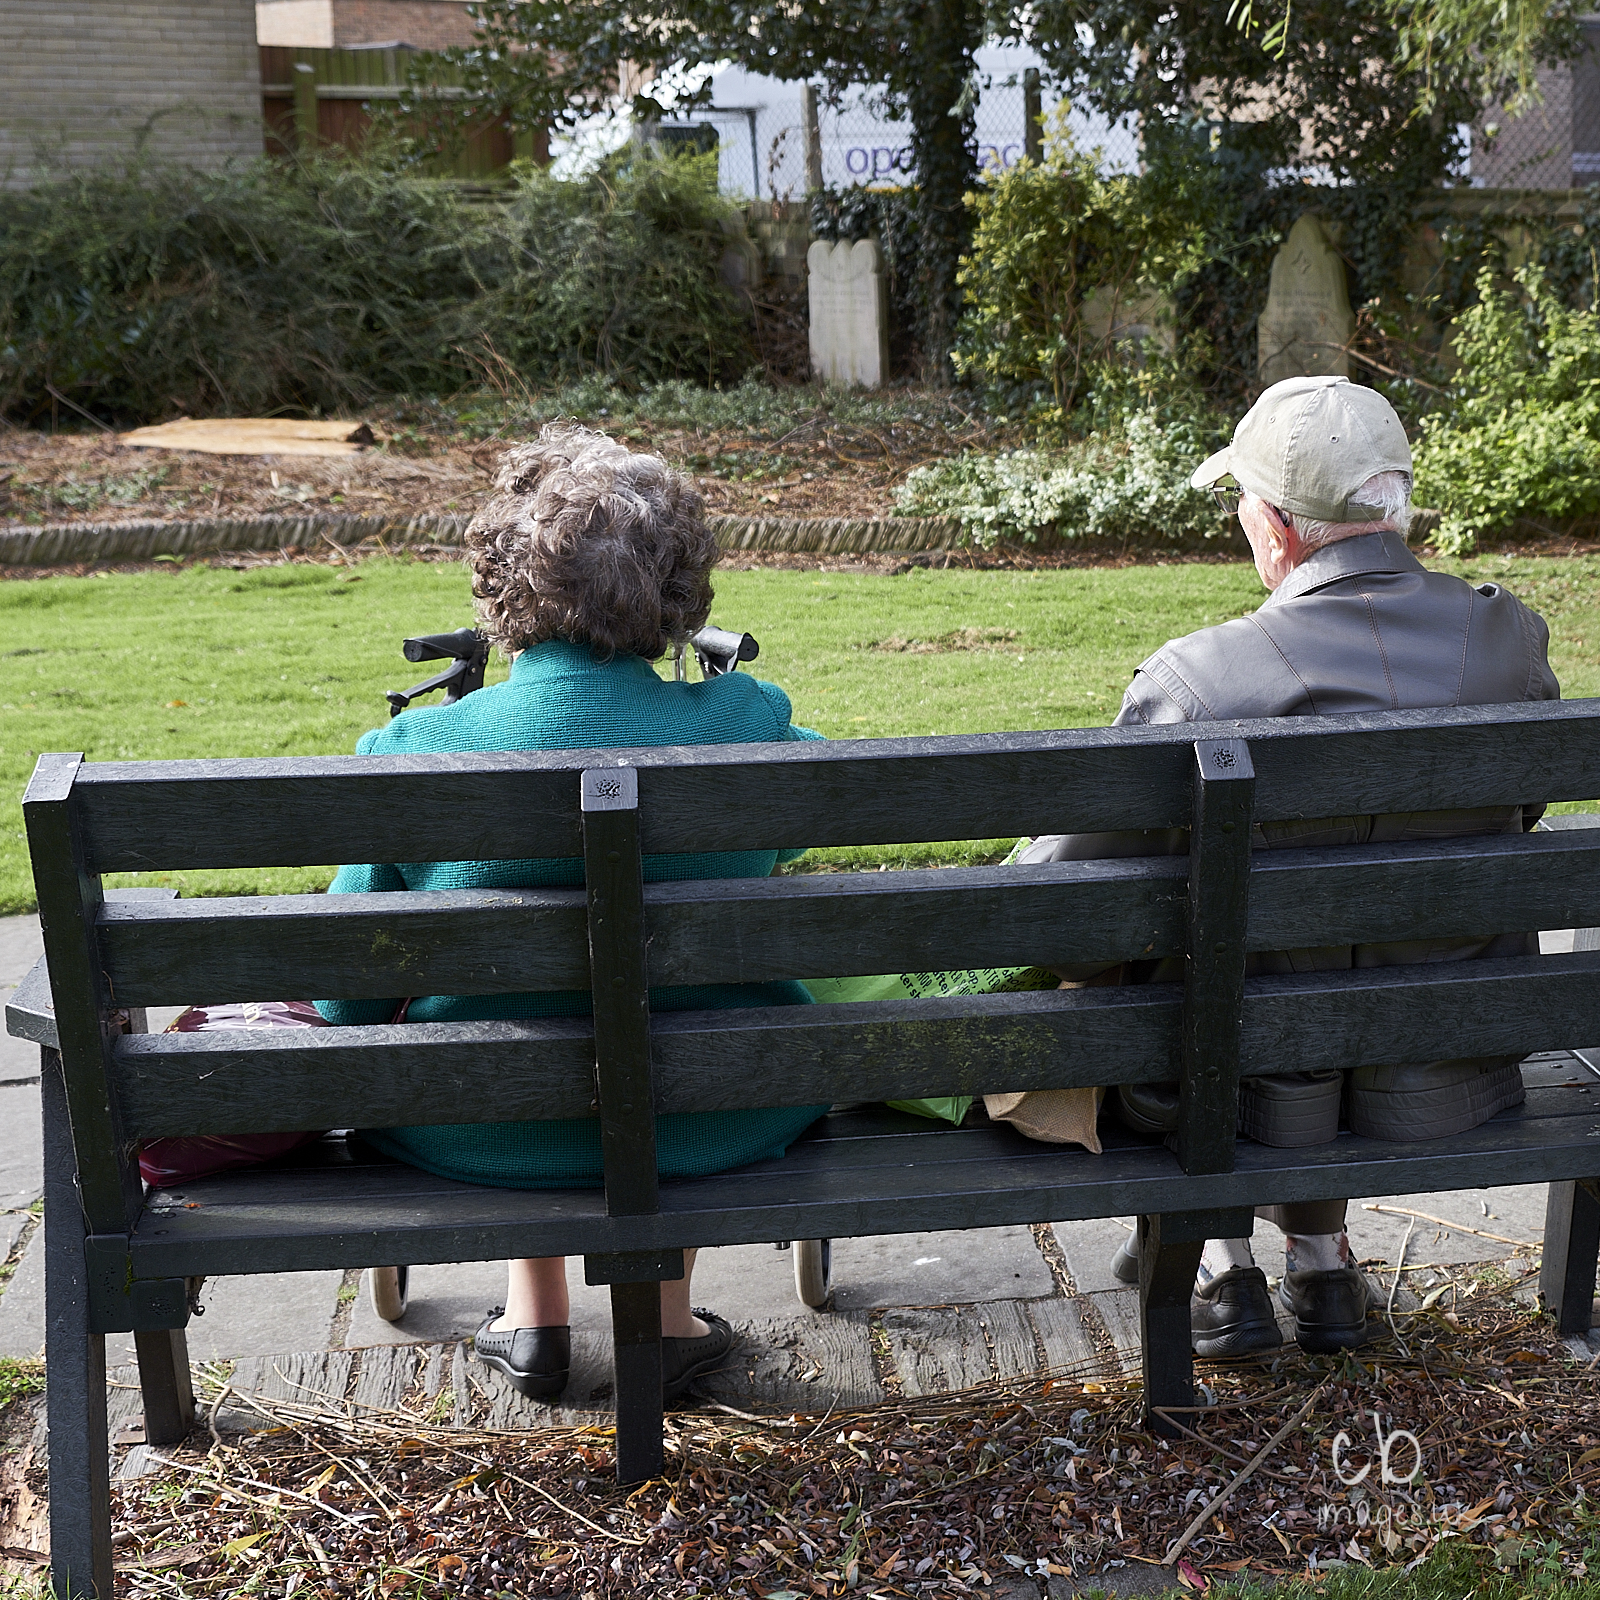 Two elderly individuals take a rest on a bench in a town in England